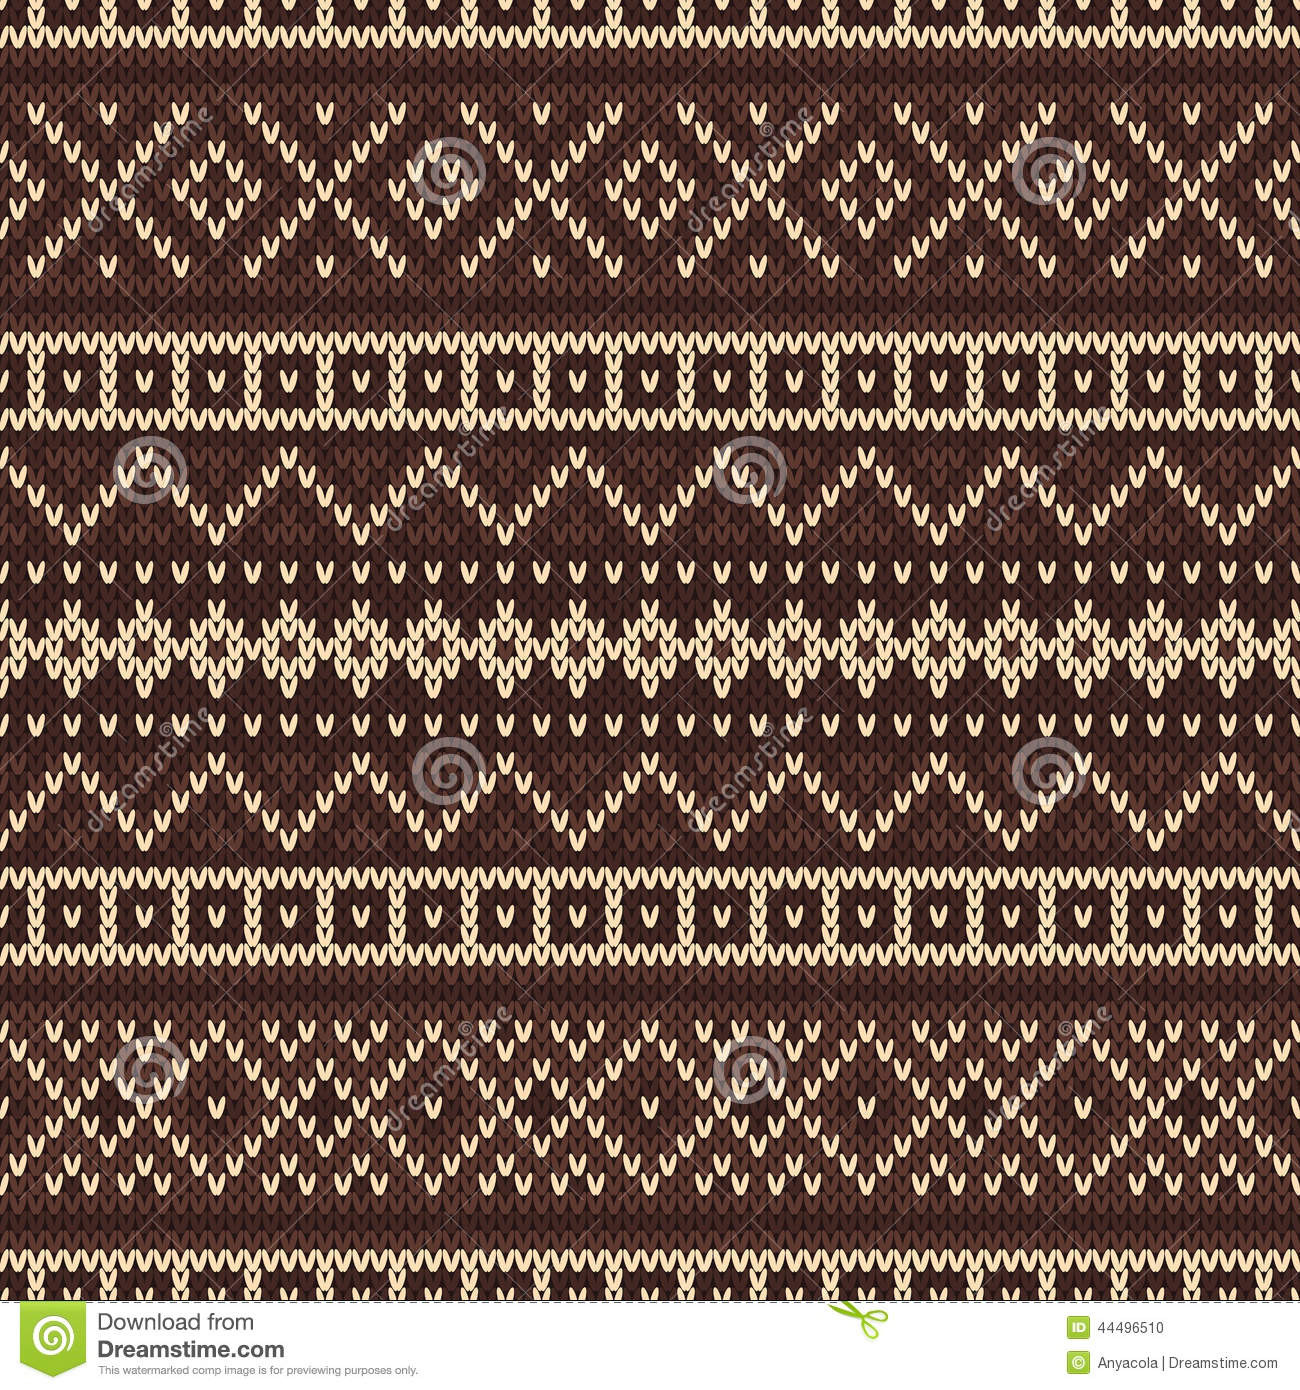 Awesome Knitted Seamless Pattern In Fair isle Style Stock Vector Fair isle Pattern Of Top 42 Photos Fair isle Pattern